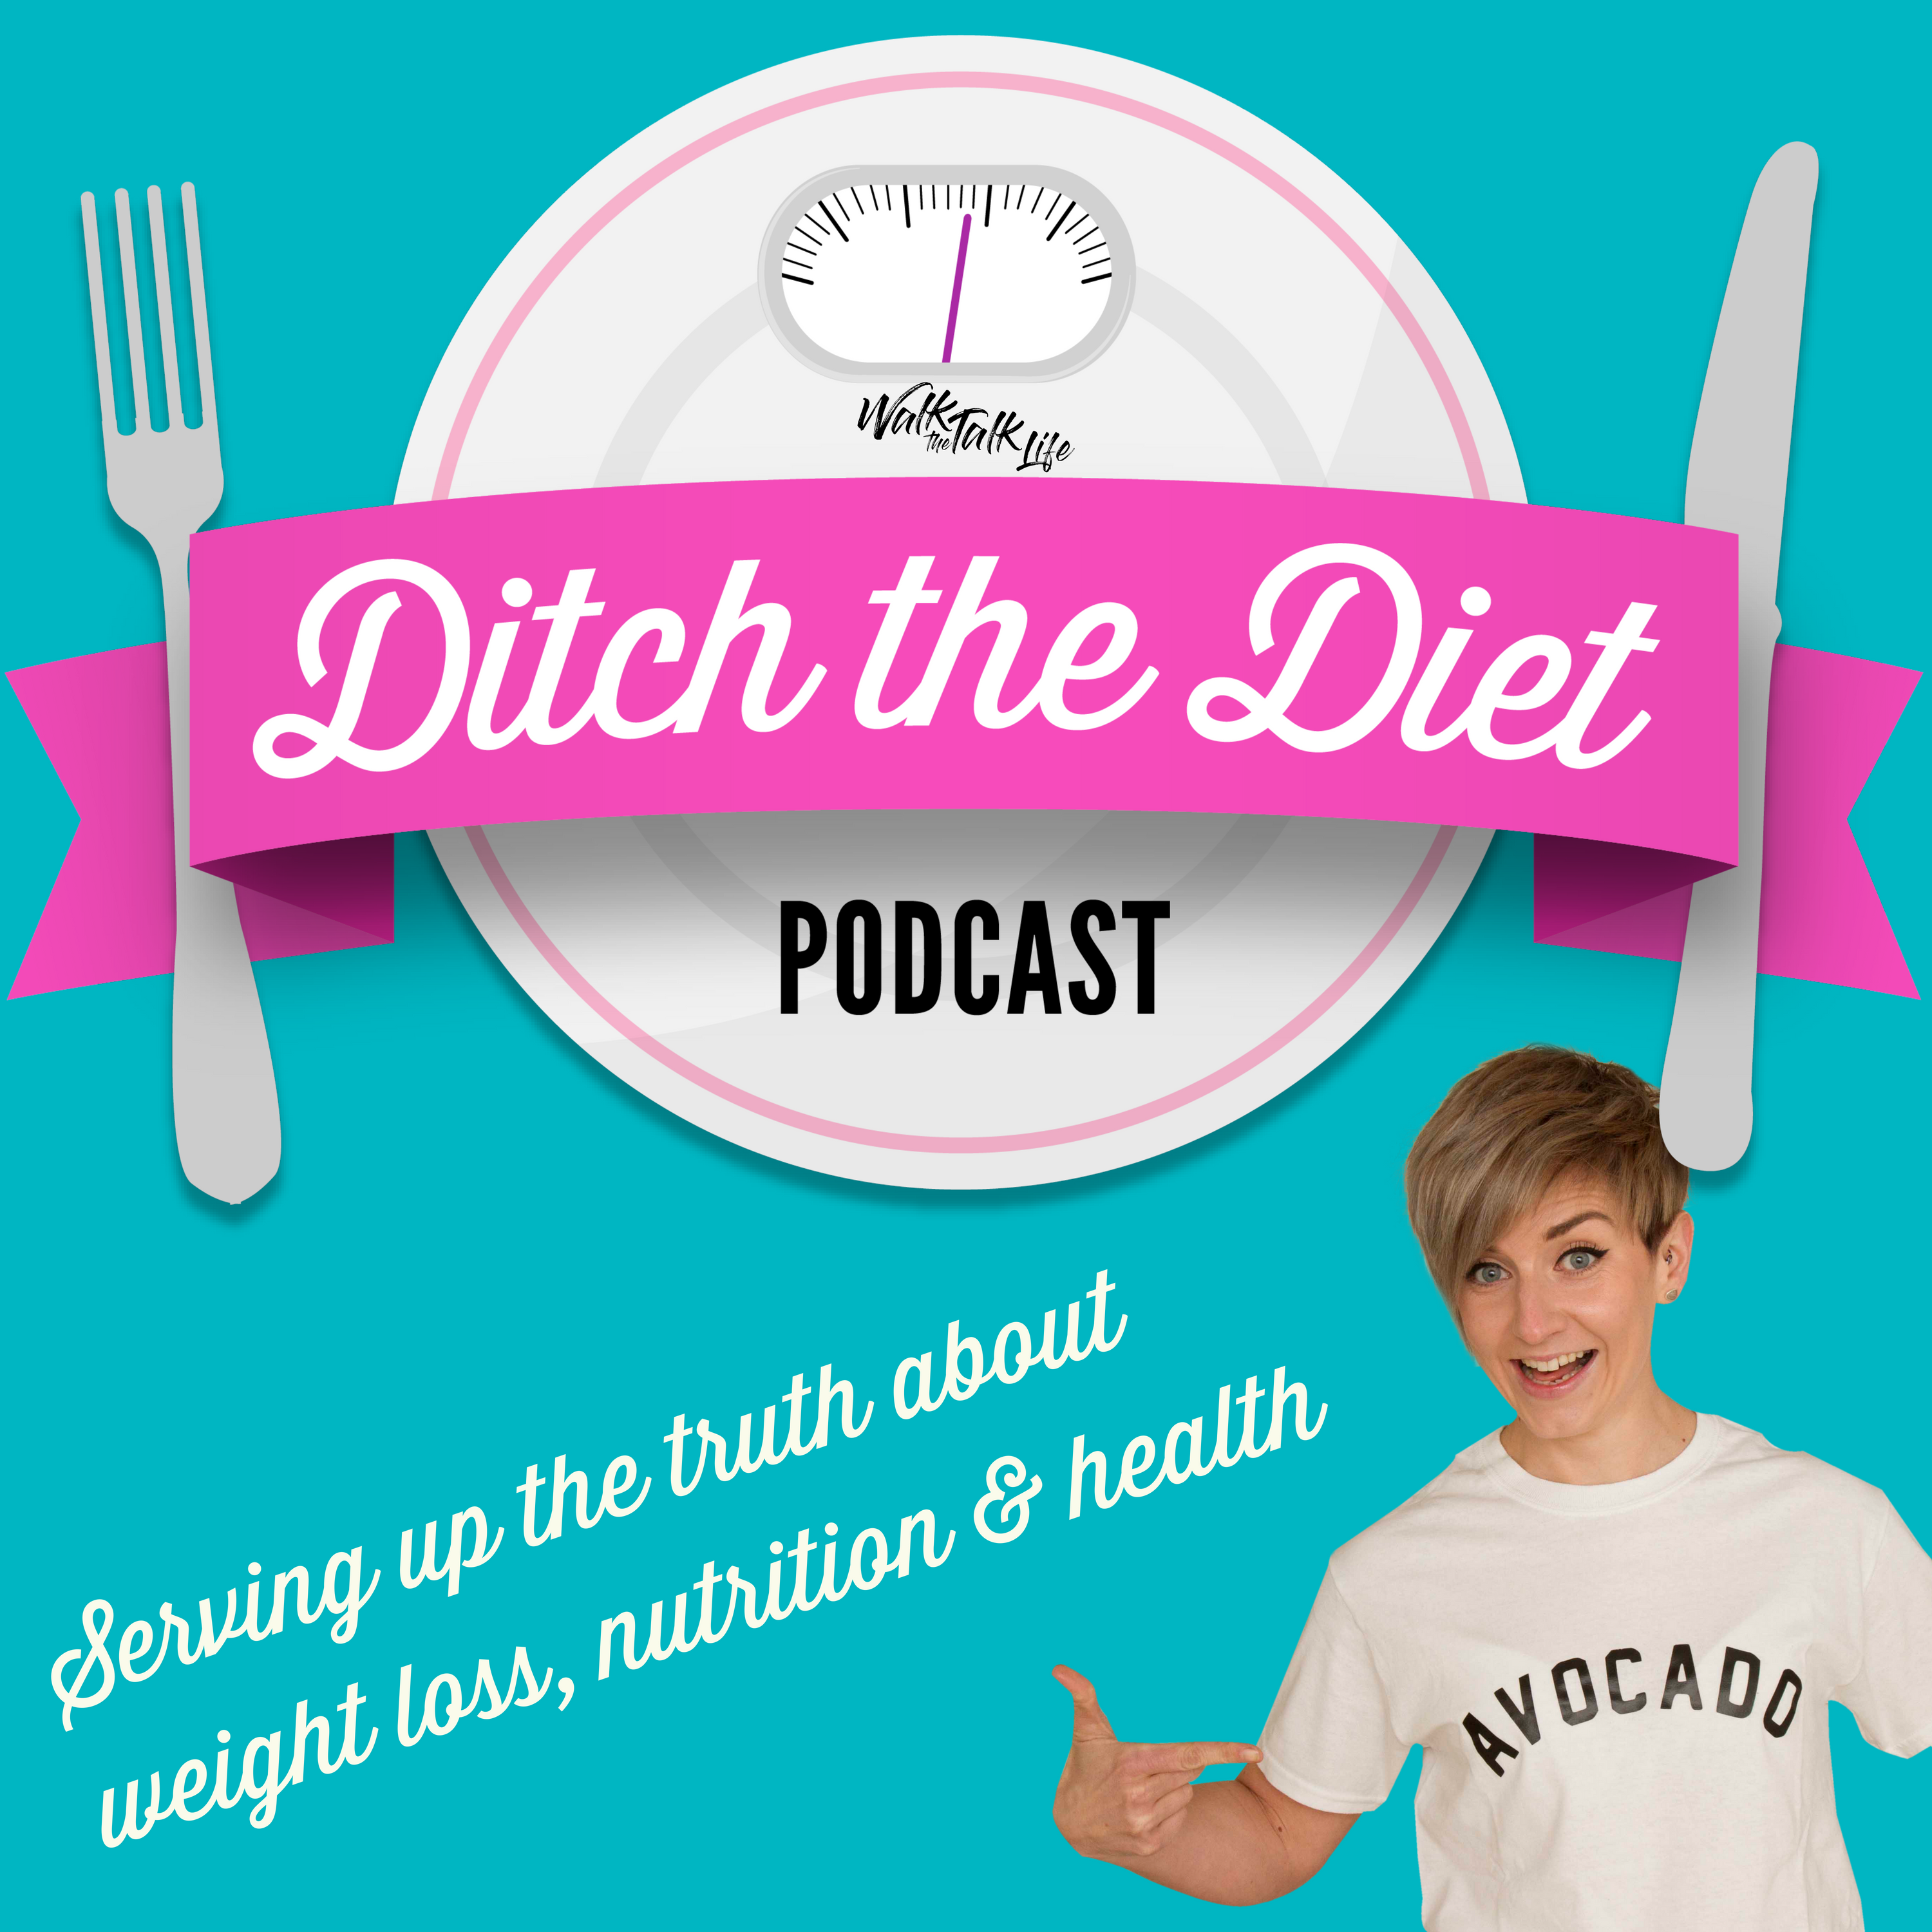 The Ditch the Diet Podcast